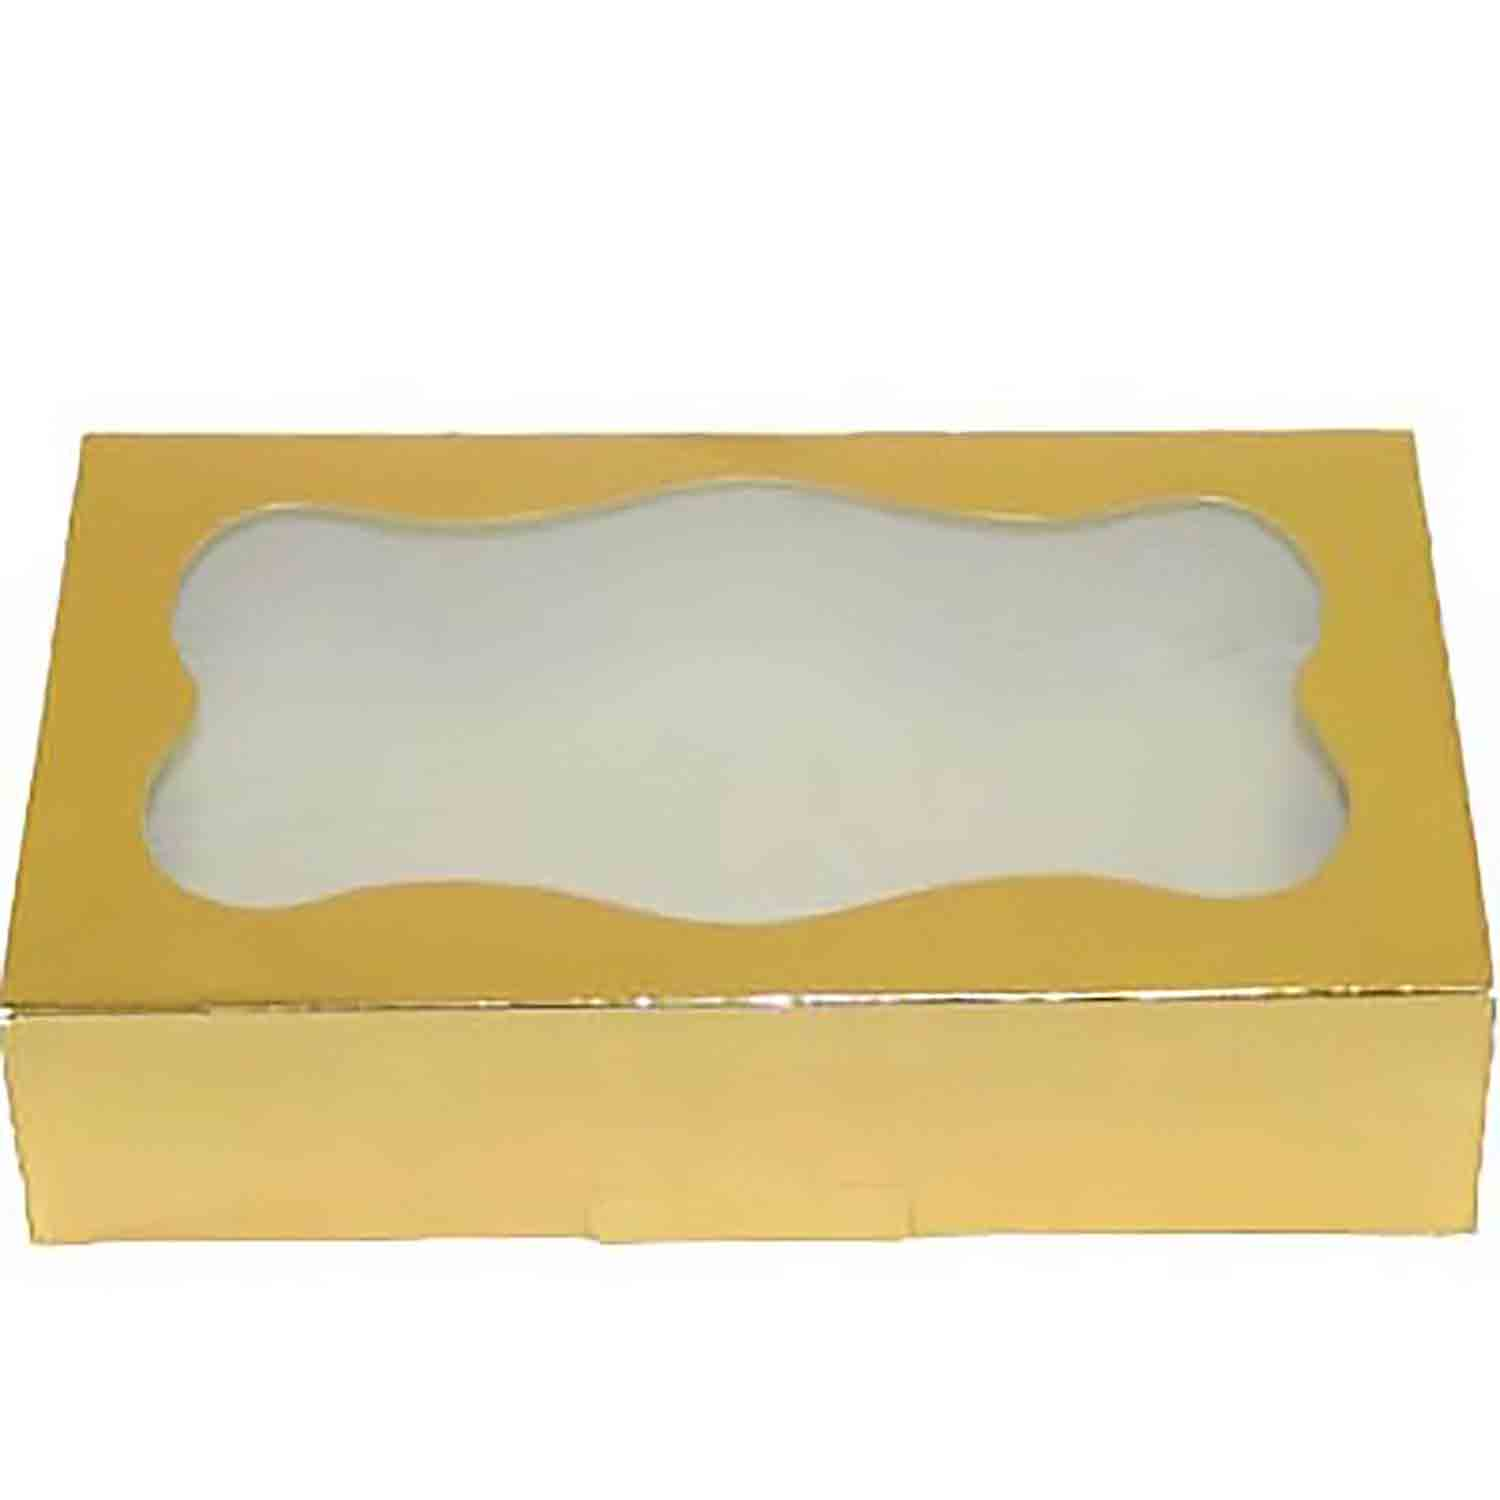 2 lb. Gold Foil Cookie Box with Window